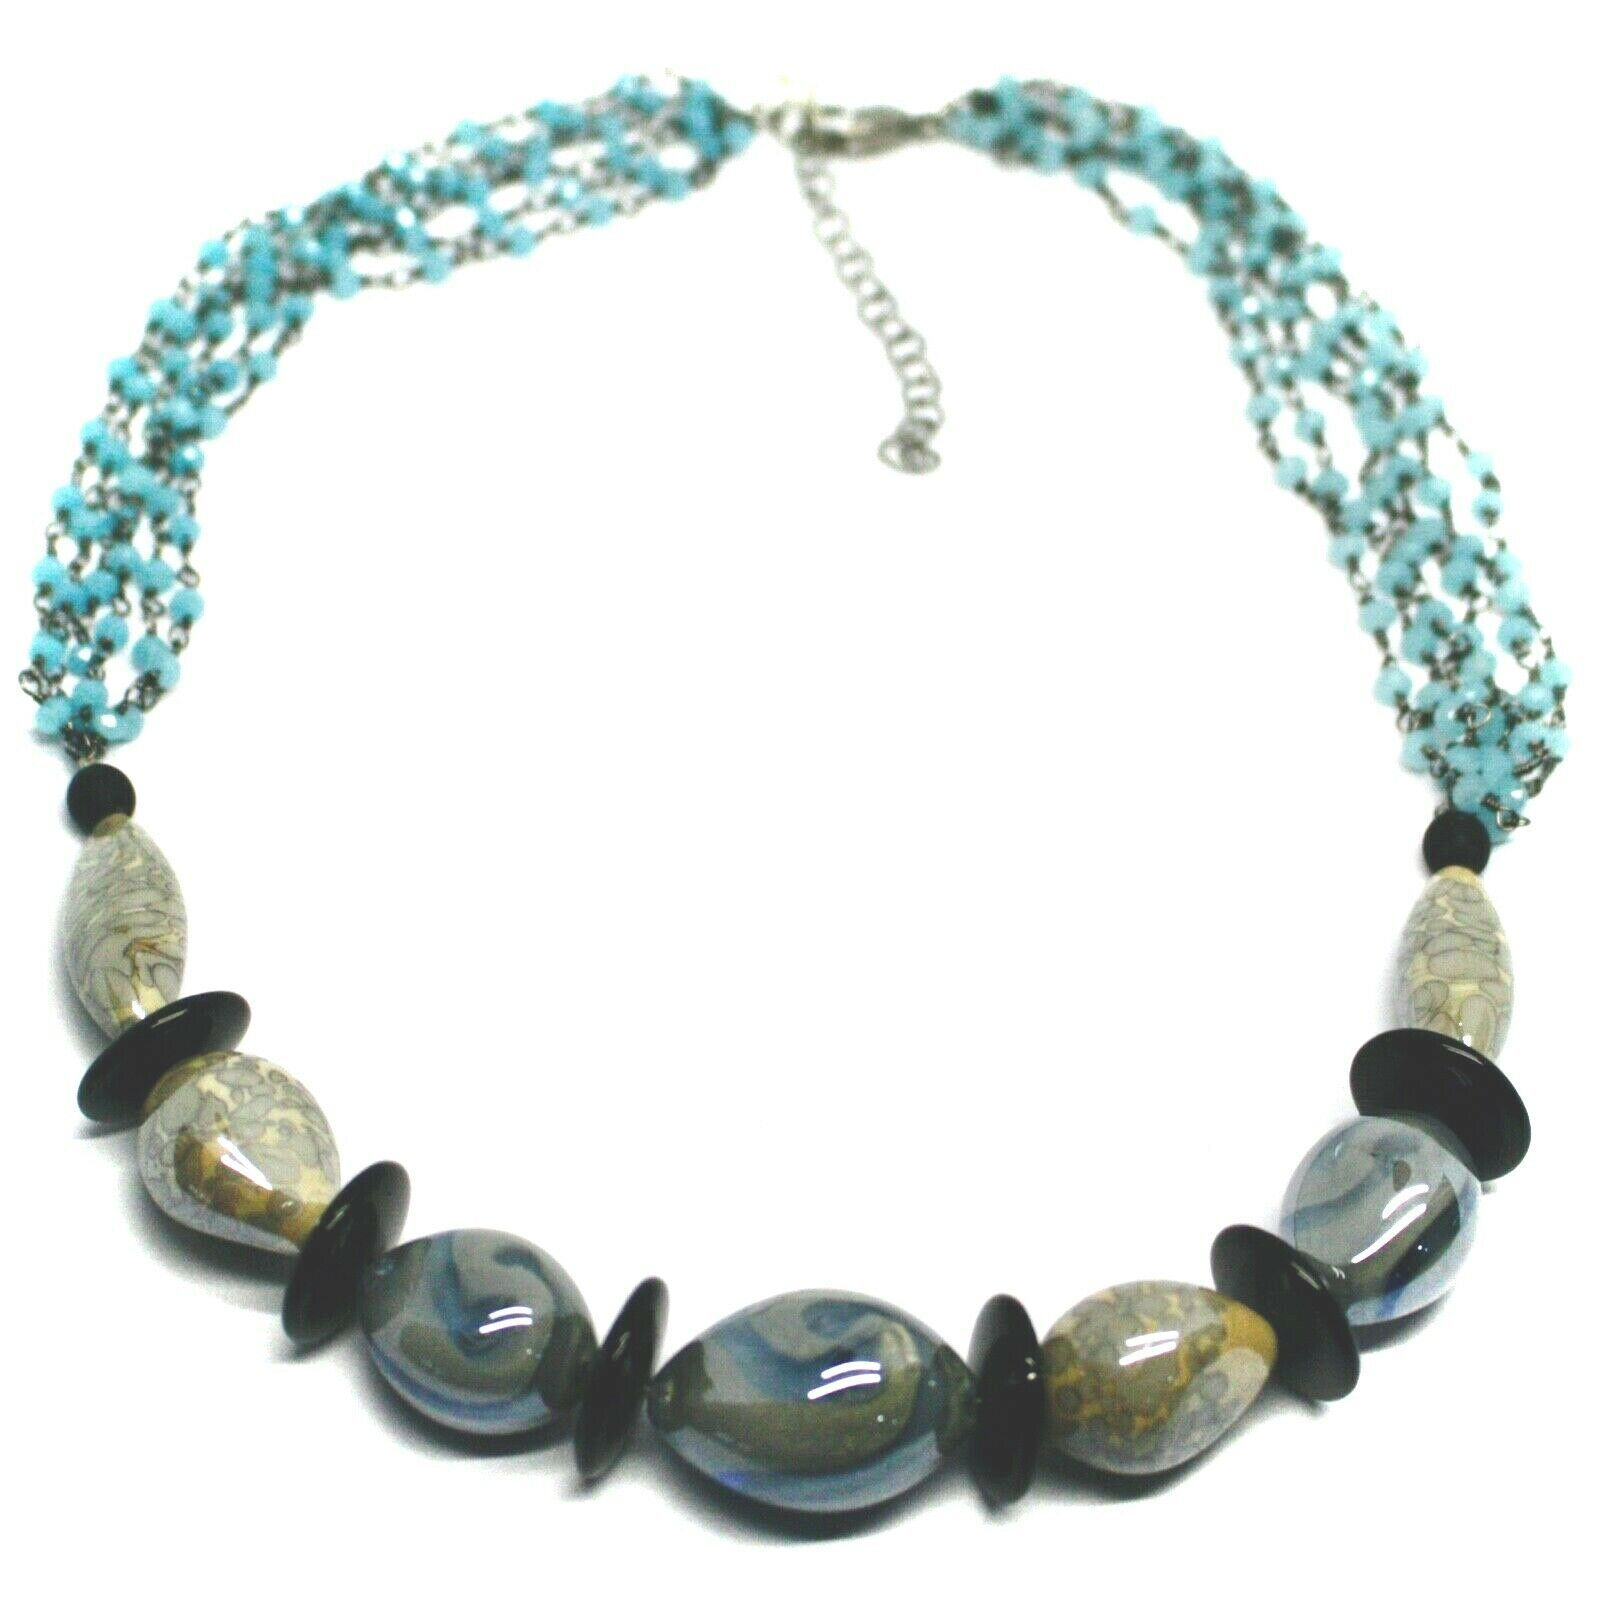 """NECKLACE BLACK, BLUE SPOTTED DROP OVAL MURANO GLASS 45cm 18"""", MADE IN ITALY"""